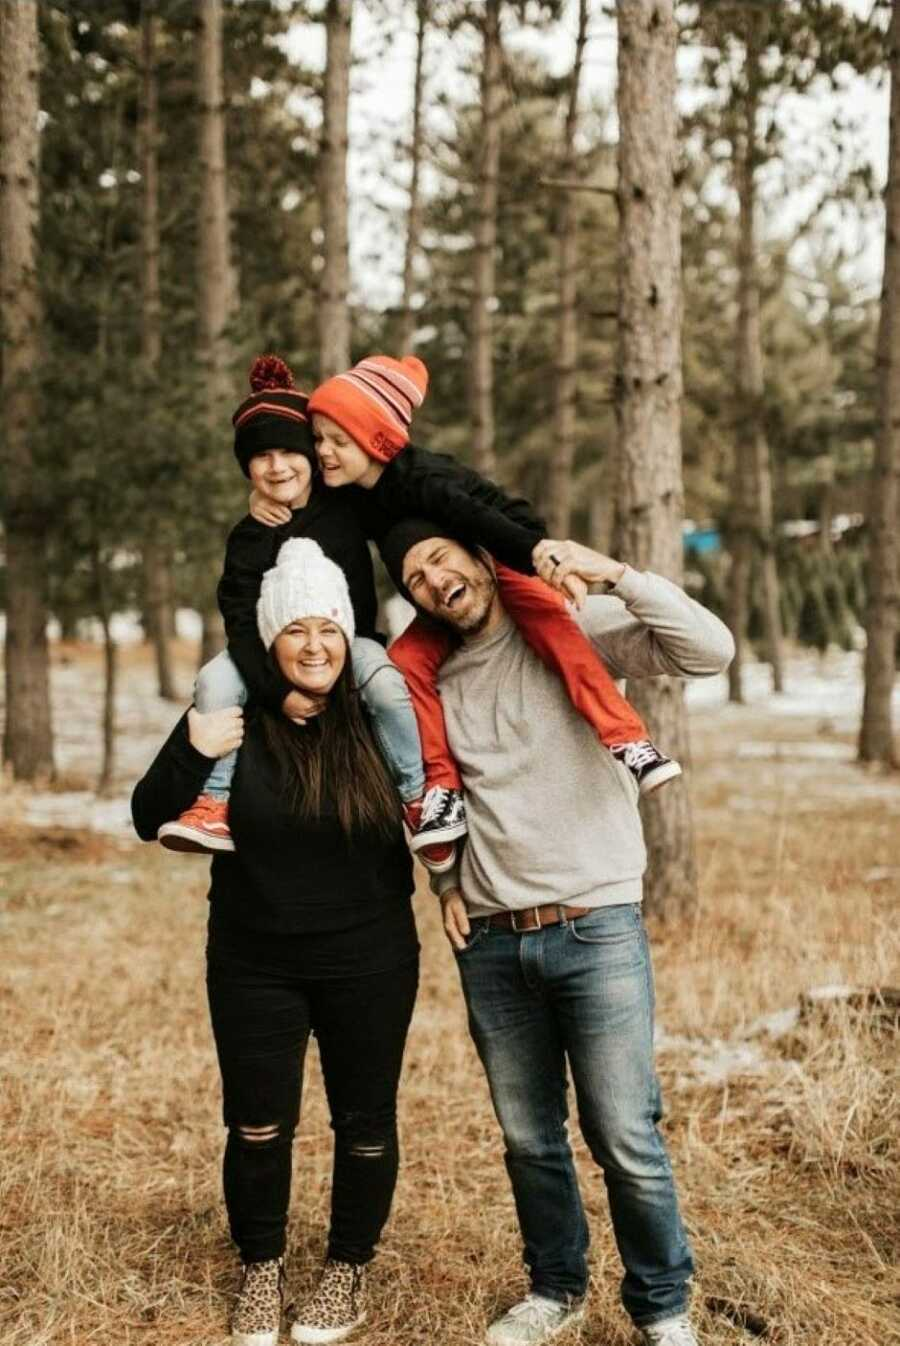 Family of four take a photo together out in the Minnesota cold, all wearing beanies